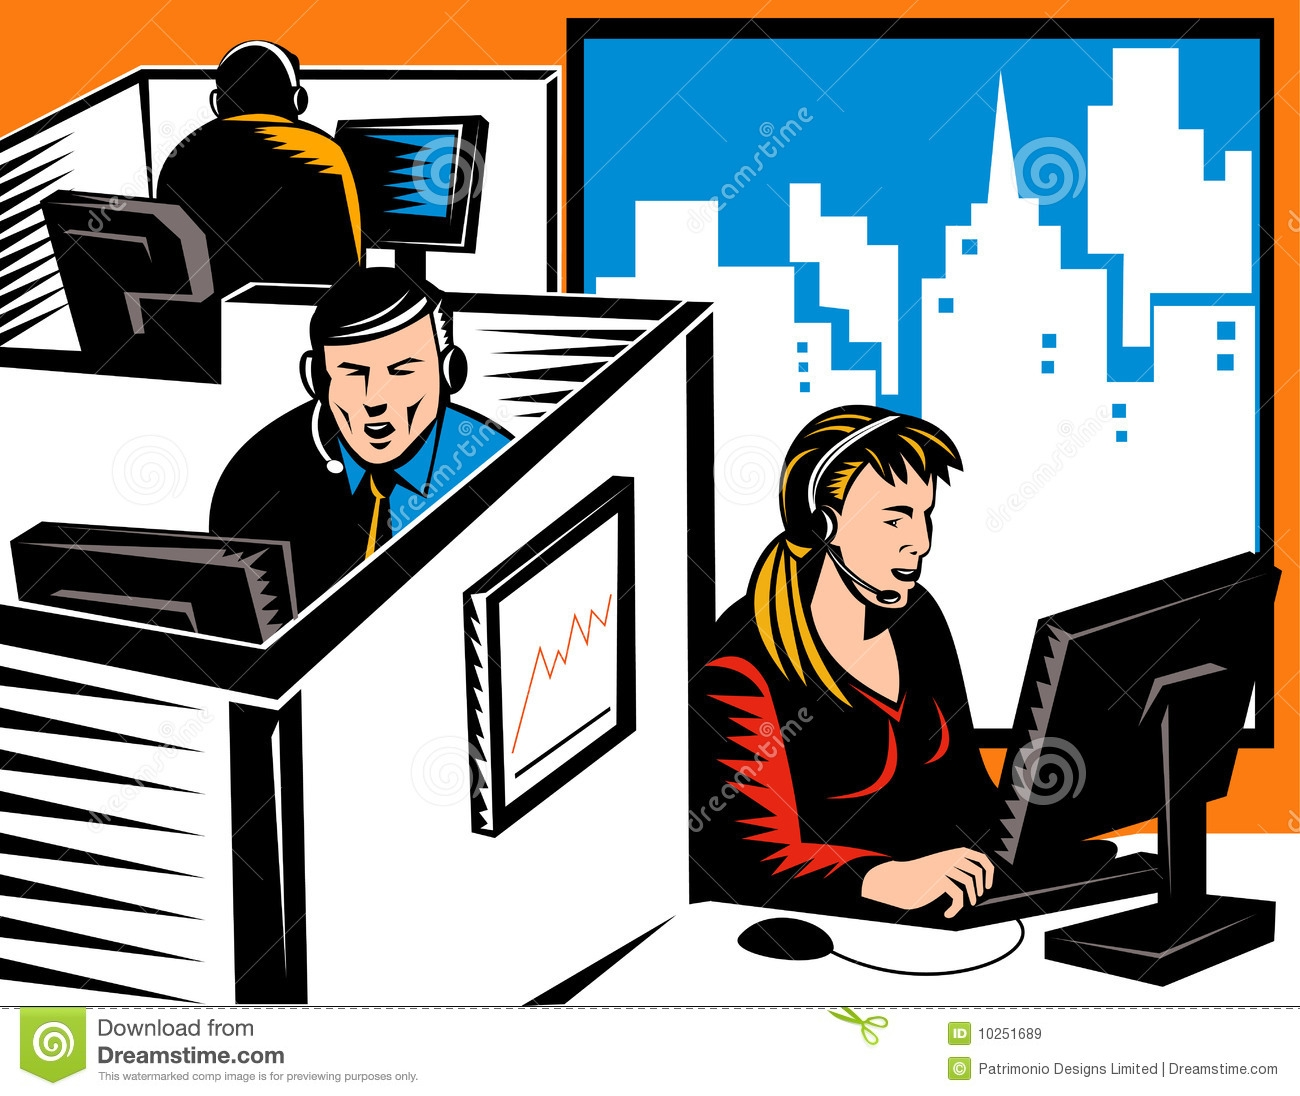 Office pictures clip art.